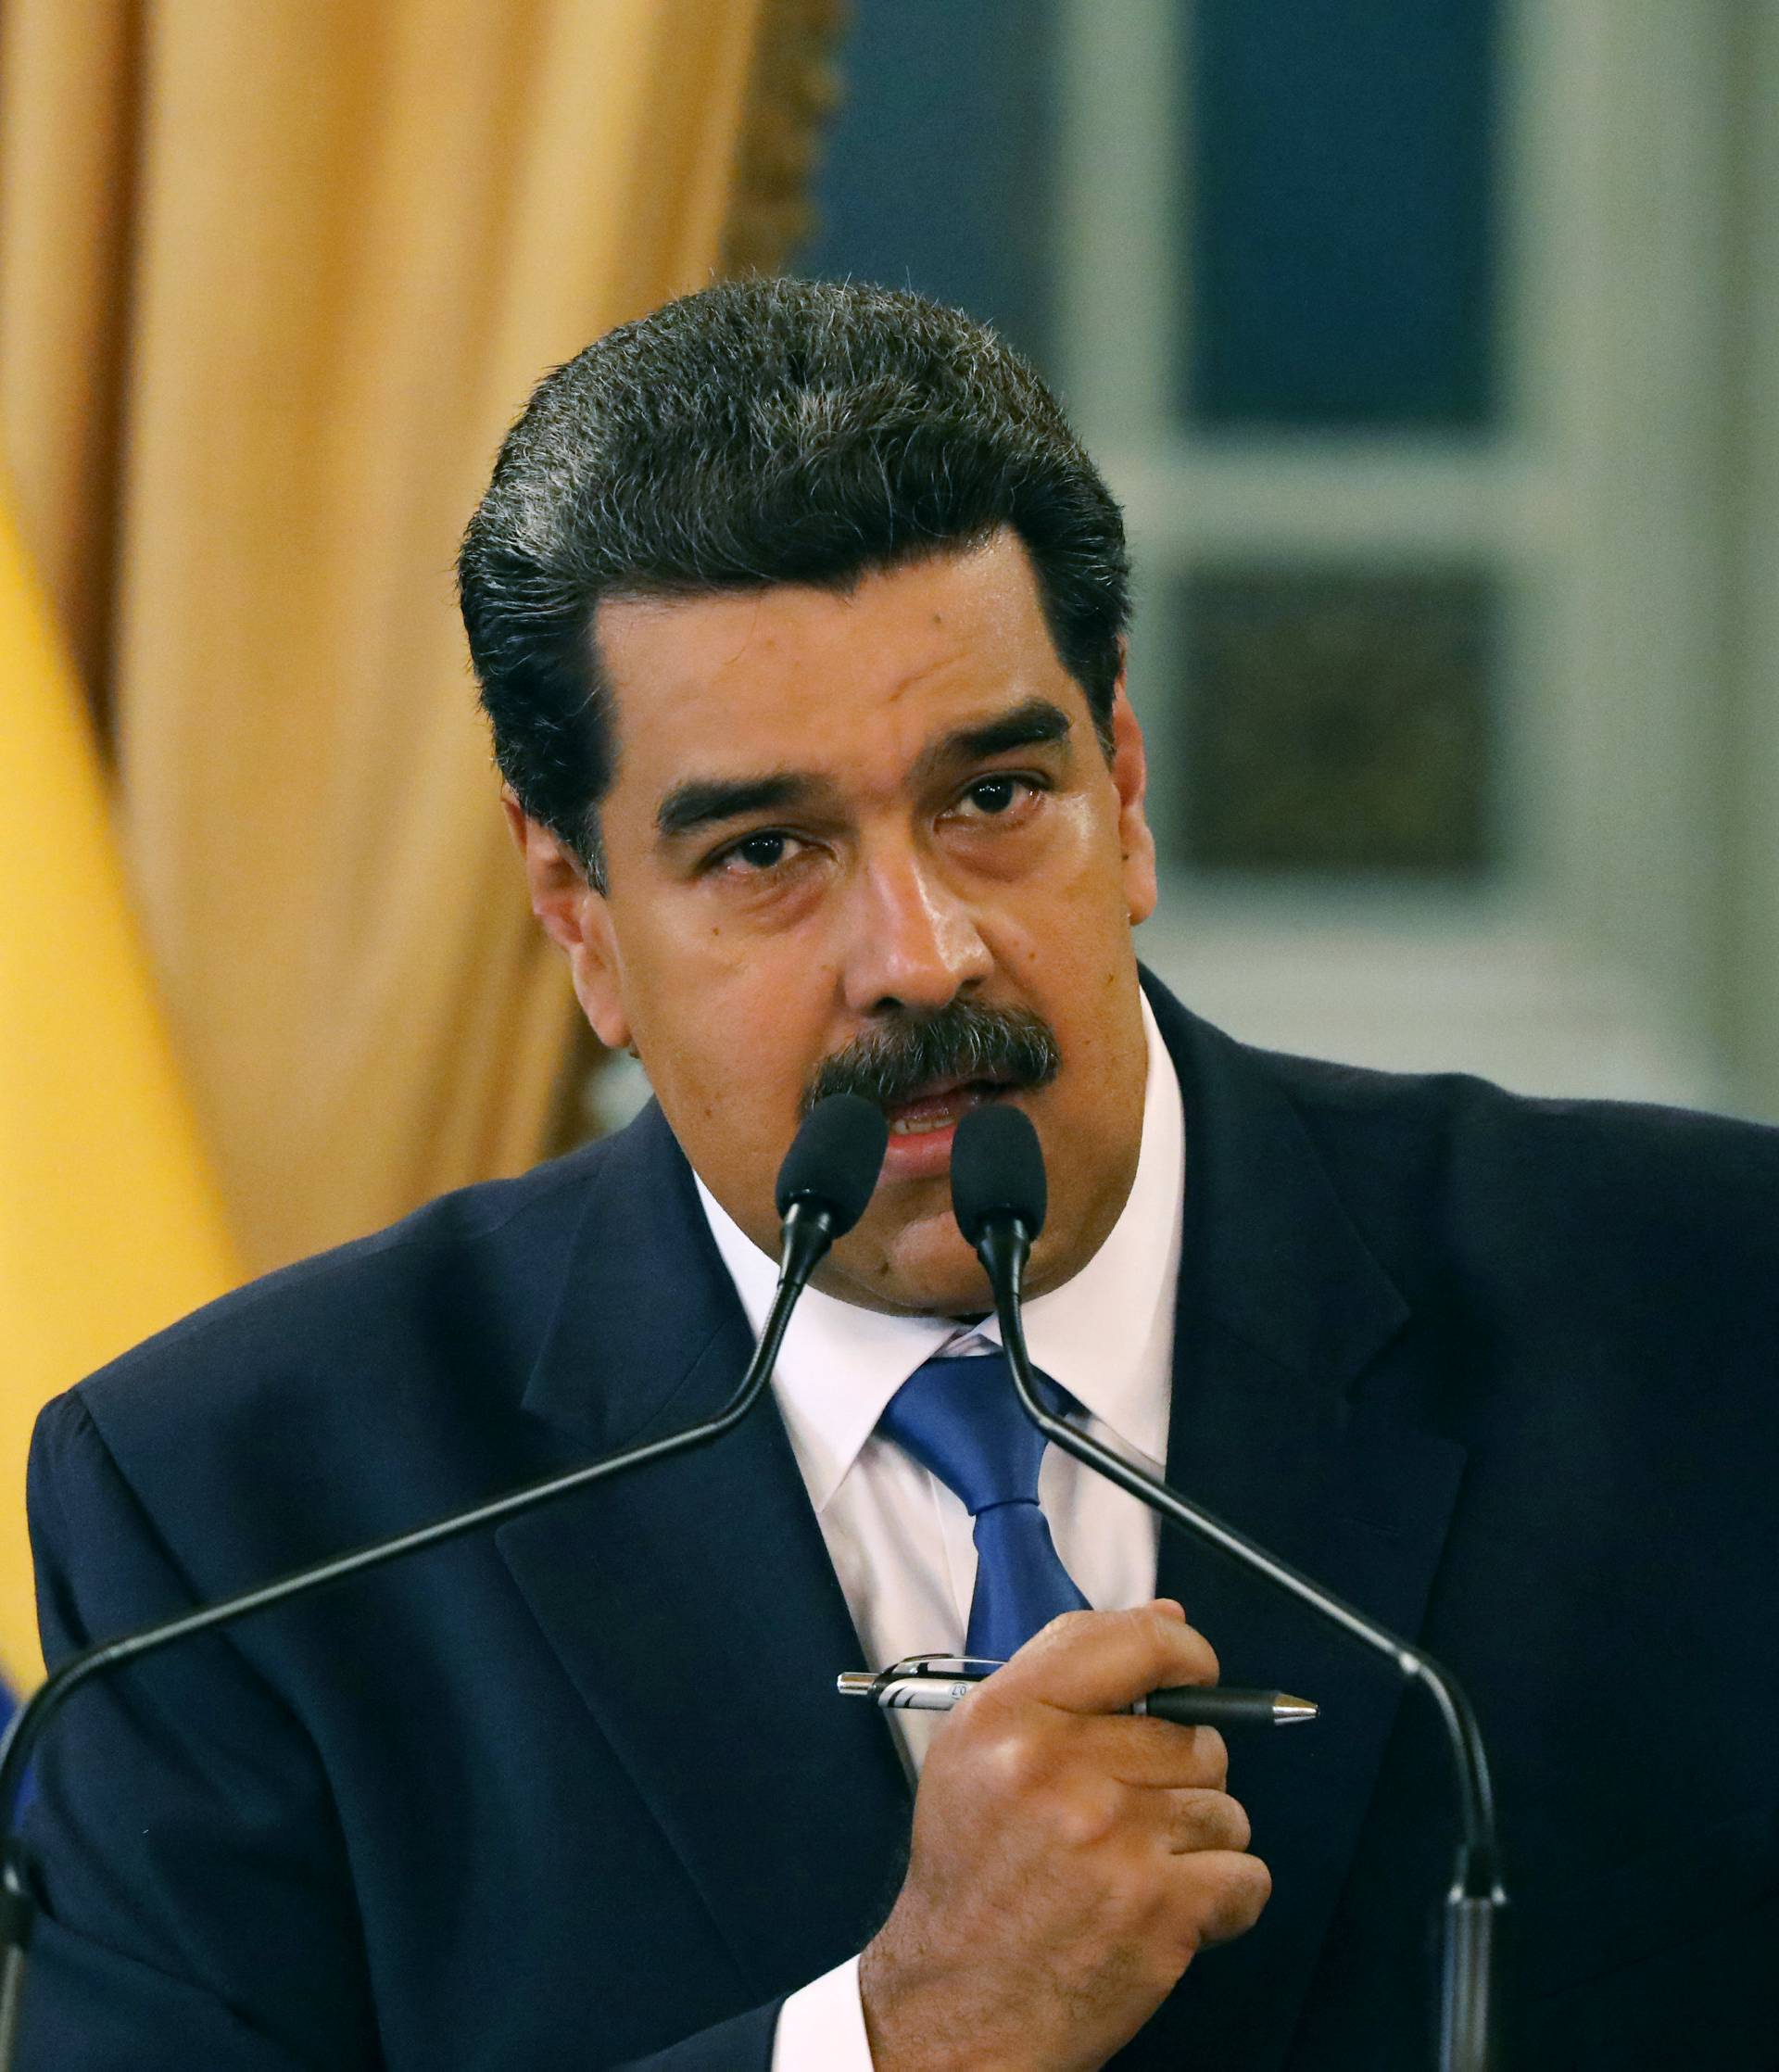 Venezuela's President Nicolas Maduro gestures during a news conference at Miraflores Palace in Caracas